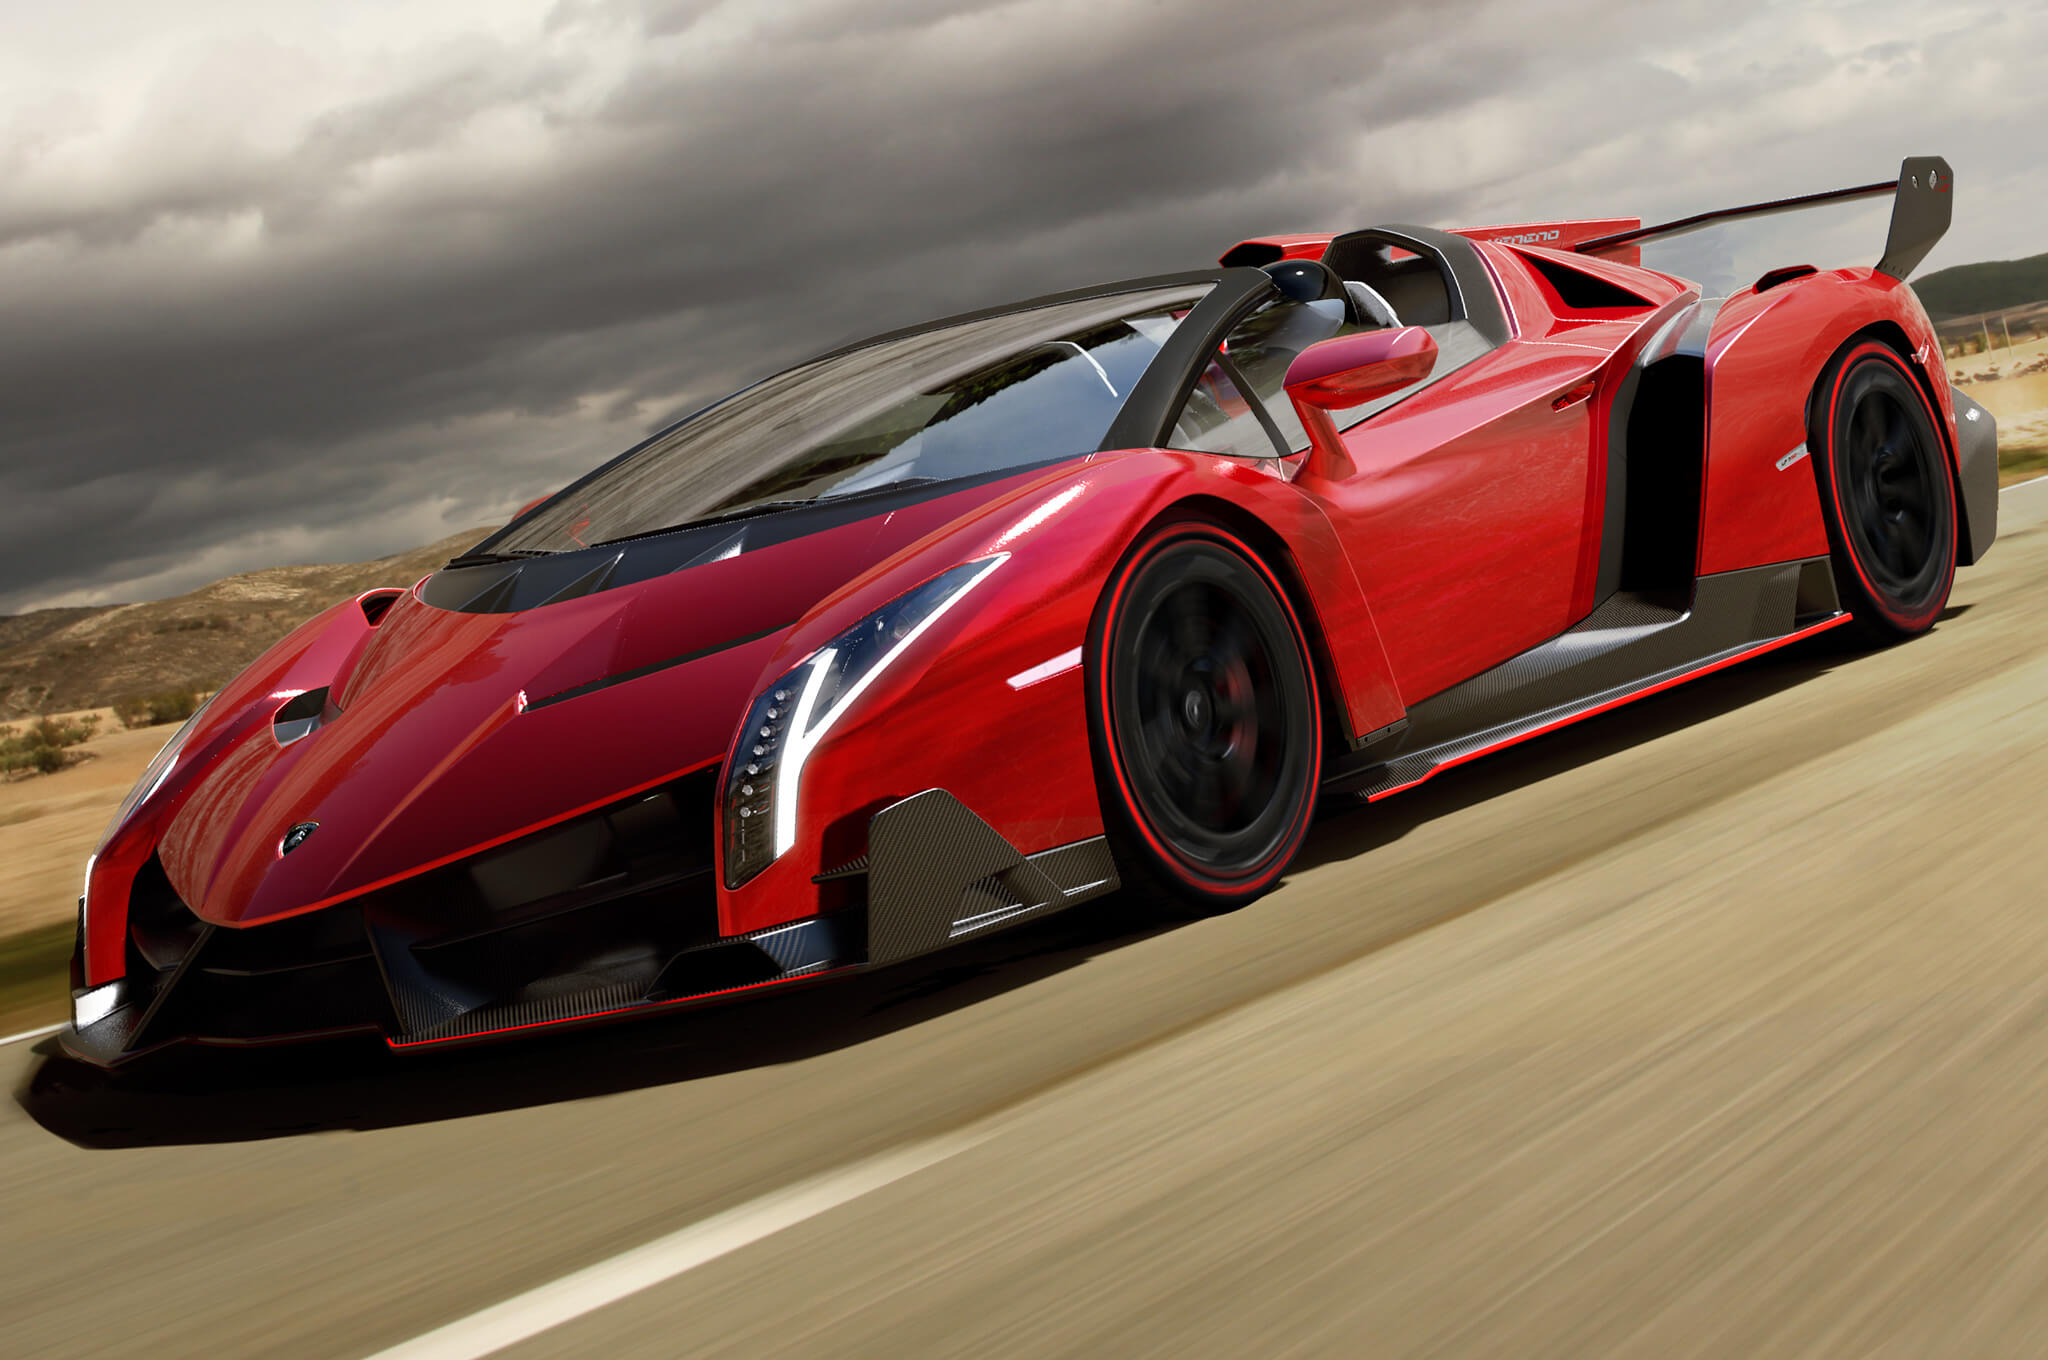 Things you didn't know about Lamborghini; Veneno Roadster